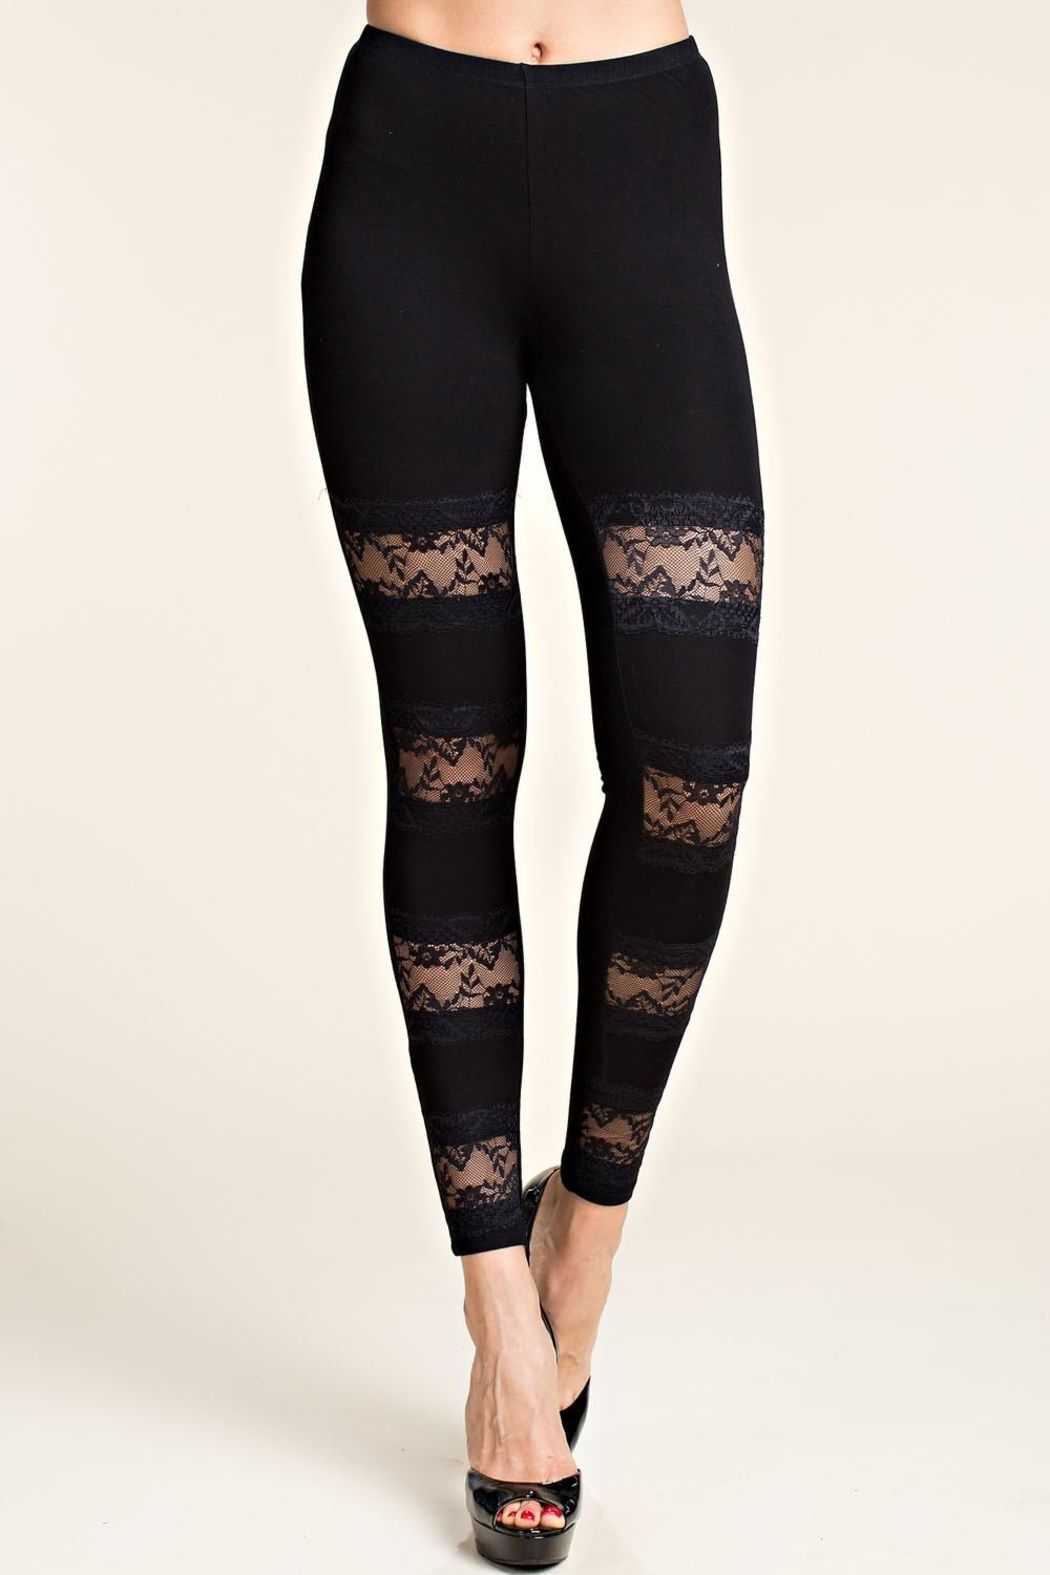 Vocal Apparel Leggings With Lace Panels - Main Image